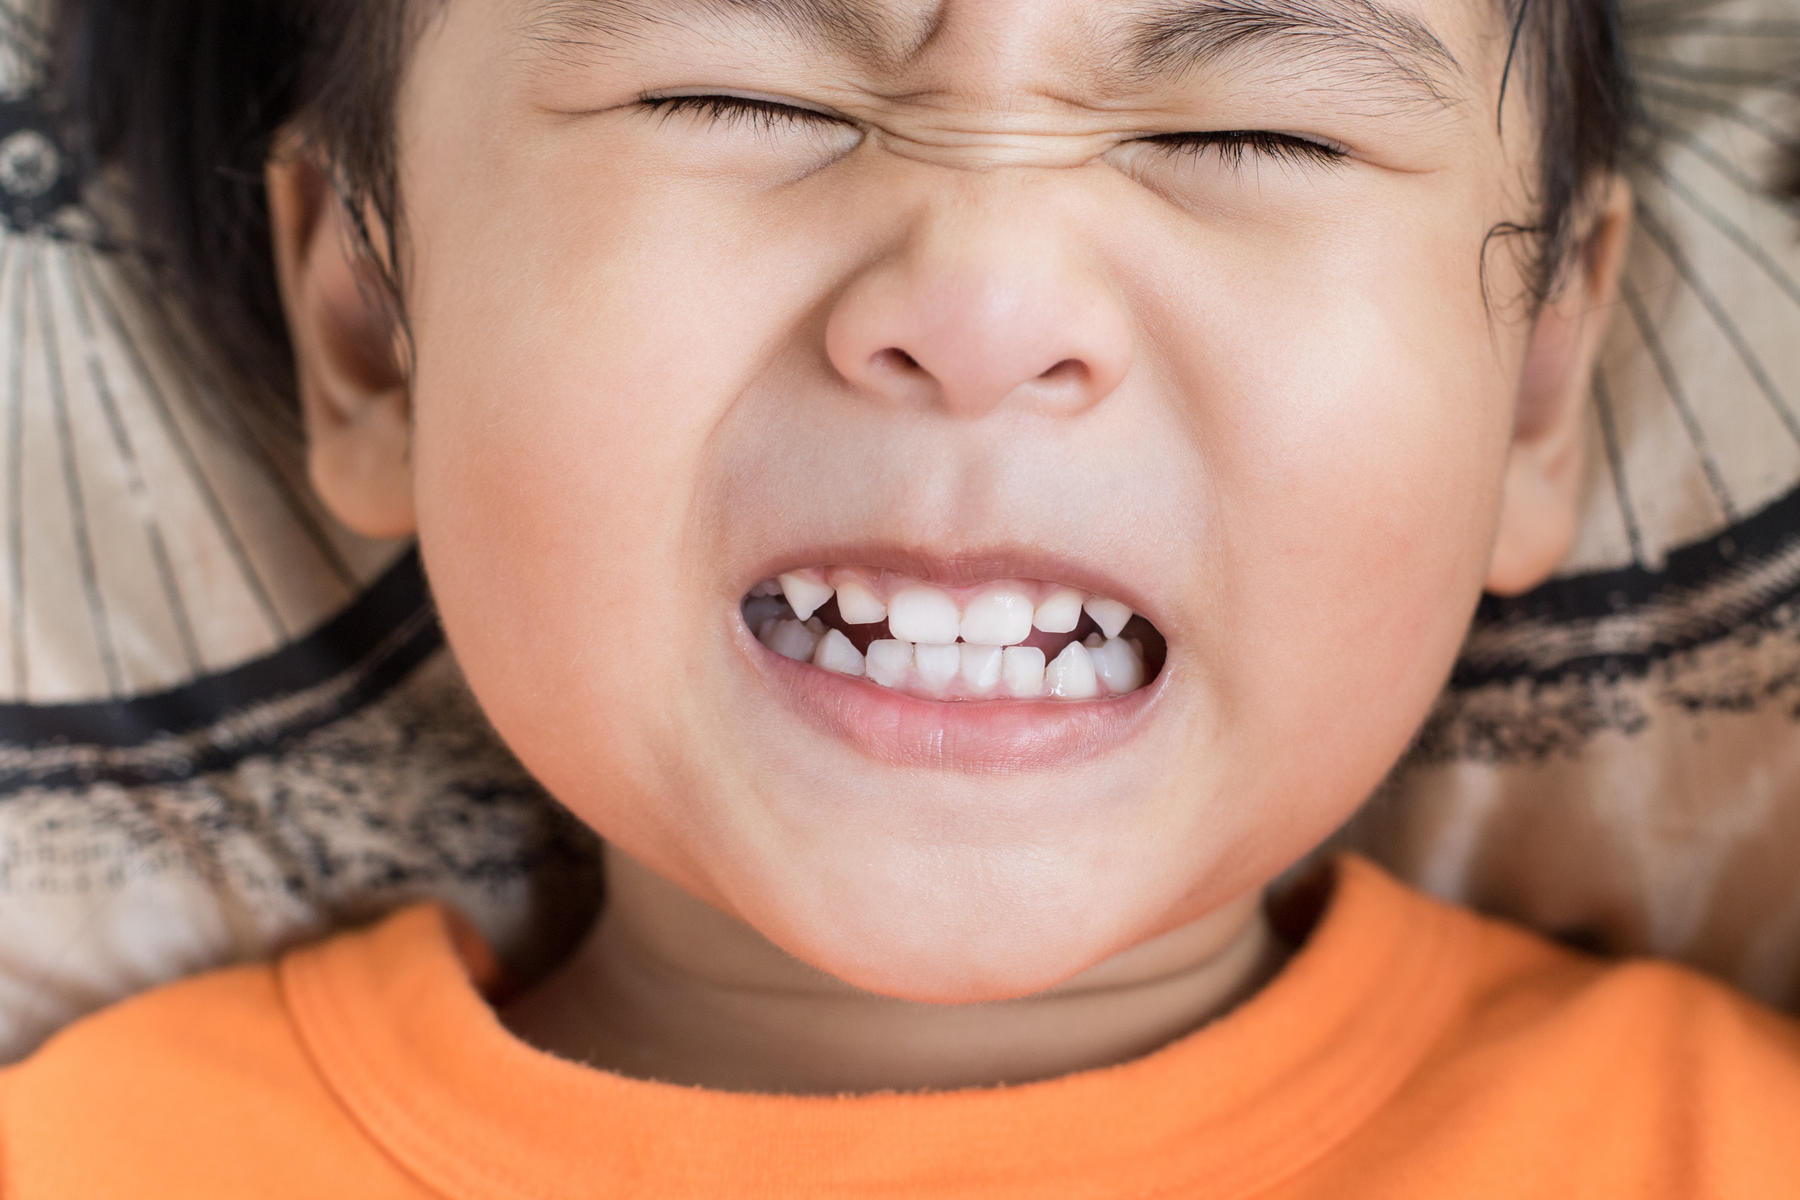 young boy showing his teeth and making a funny face